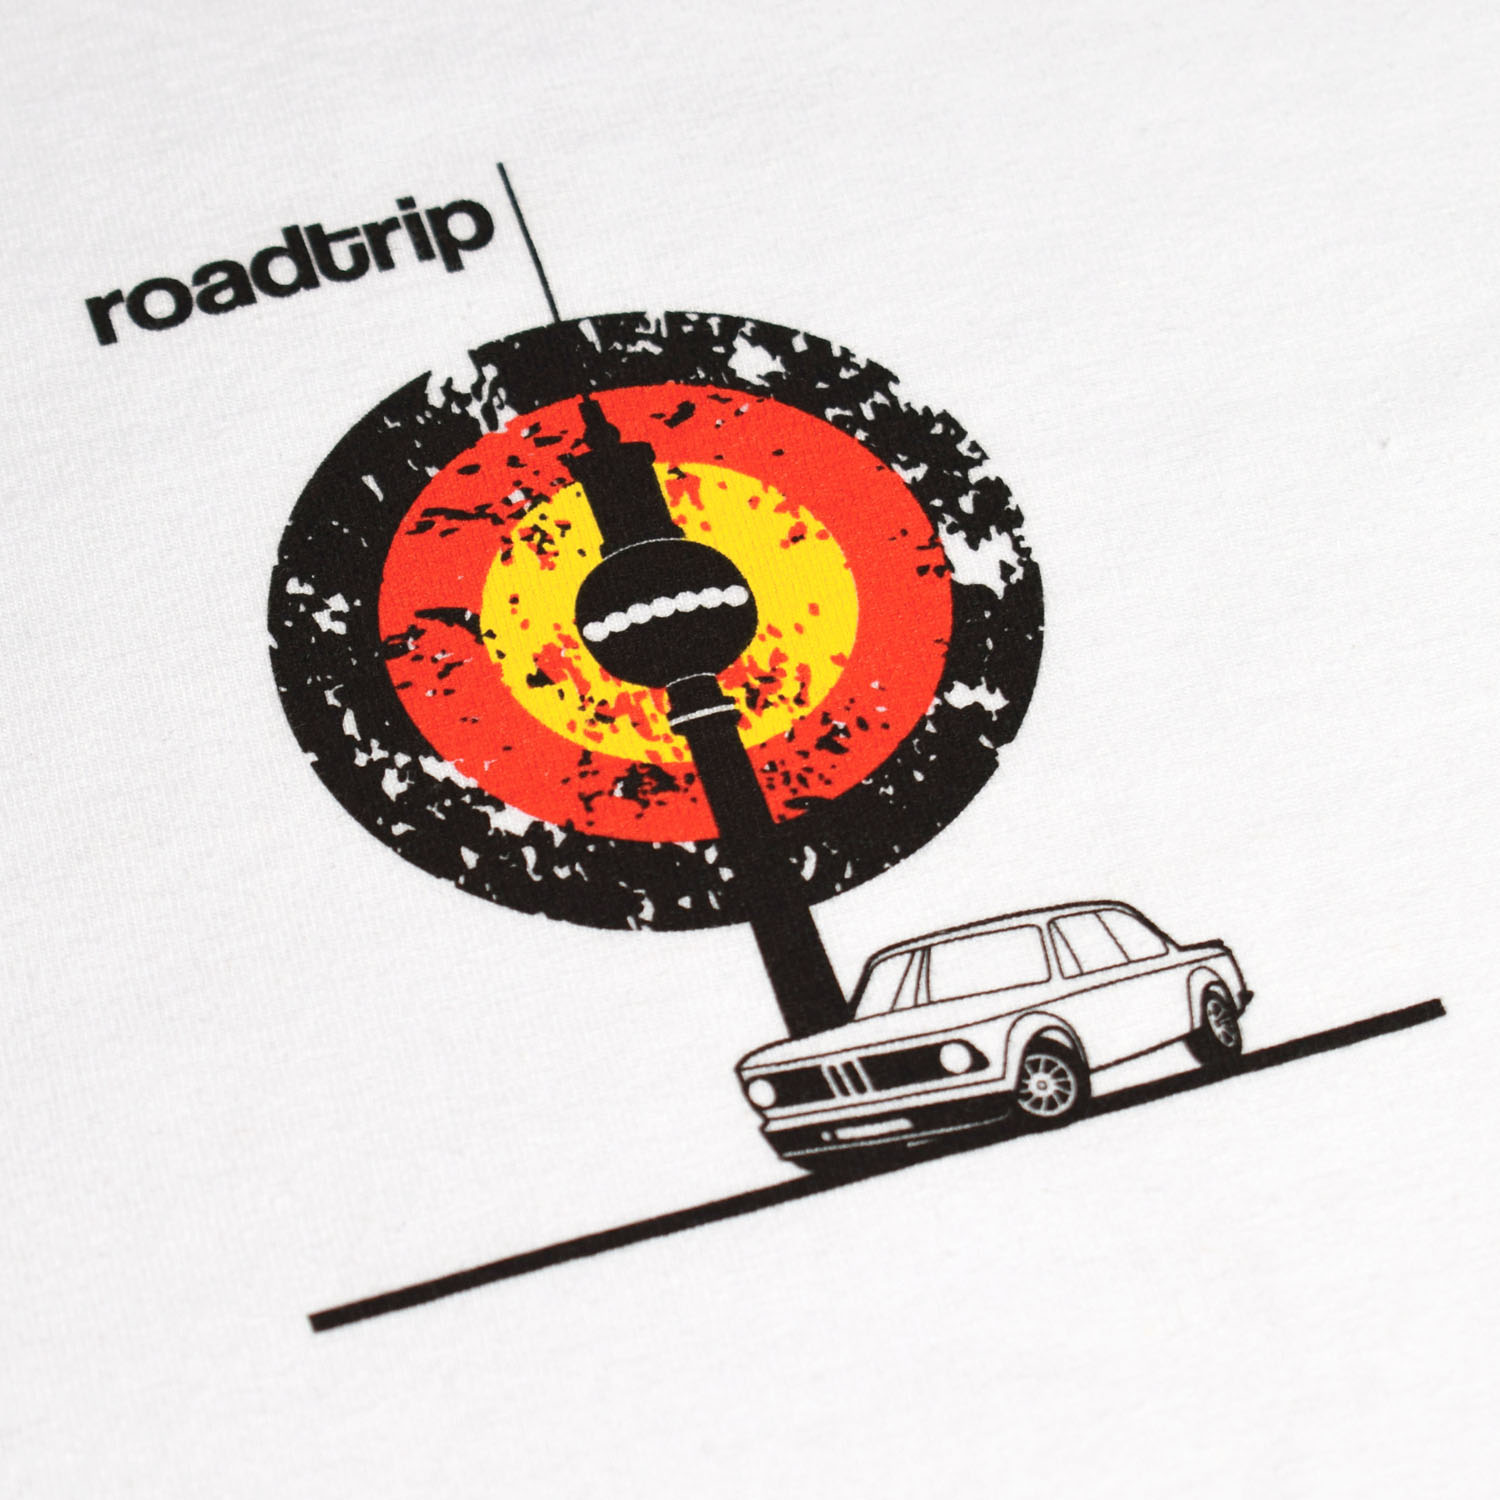 T-lab Roadtrip Berlin mens car t-shirt chest